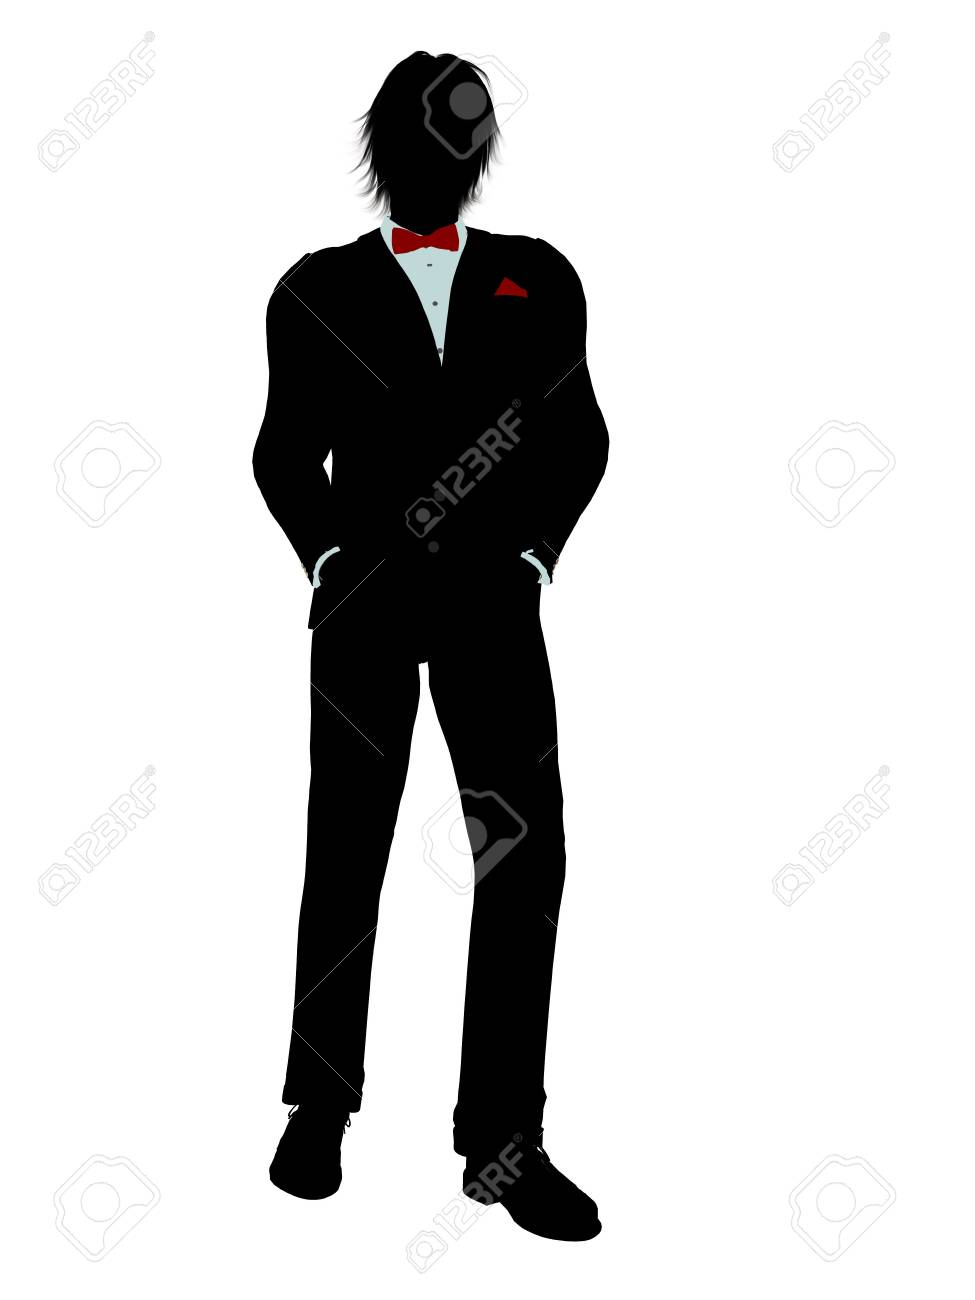 Man dressed in a tuxedo silhouette illustration on a white background Stock Illustration - 6277965